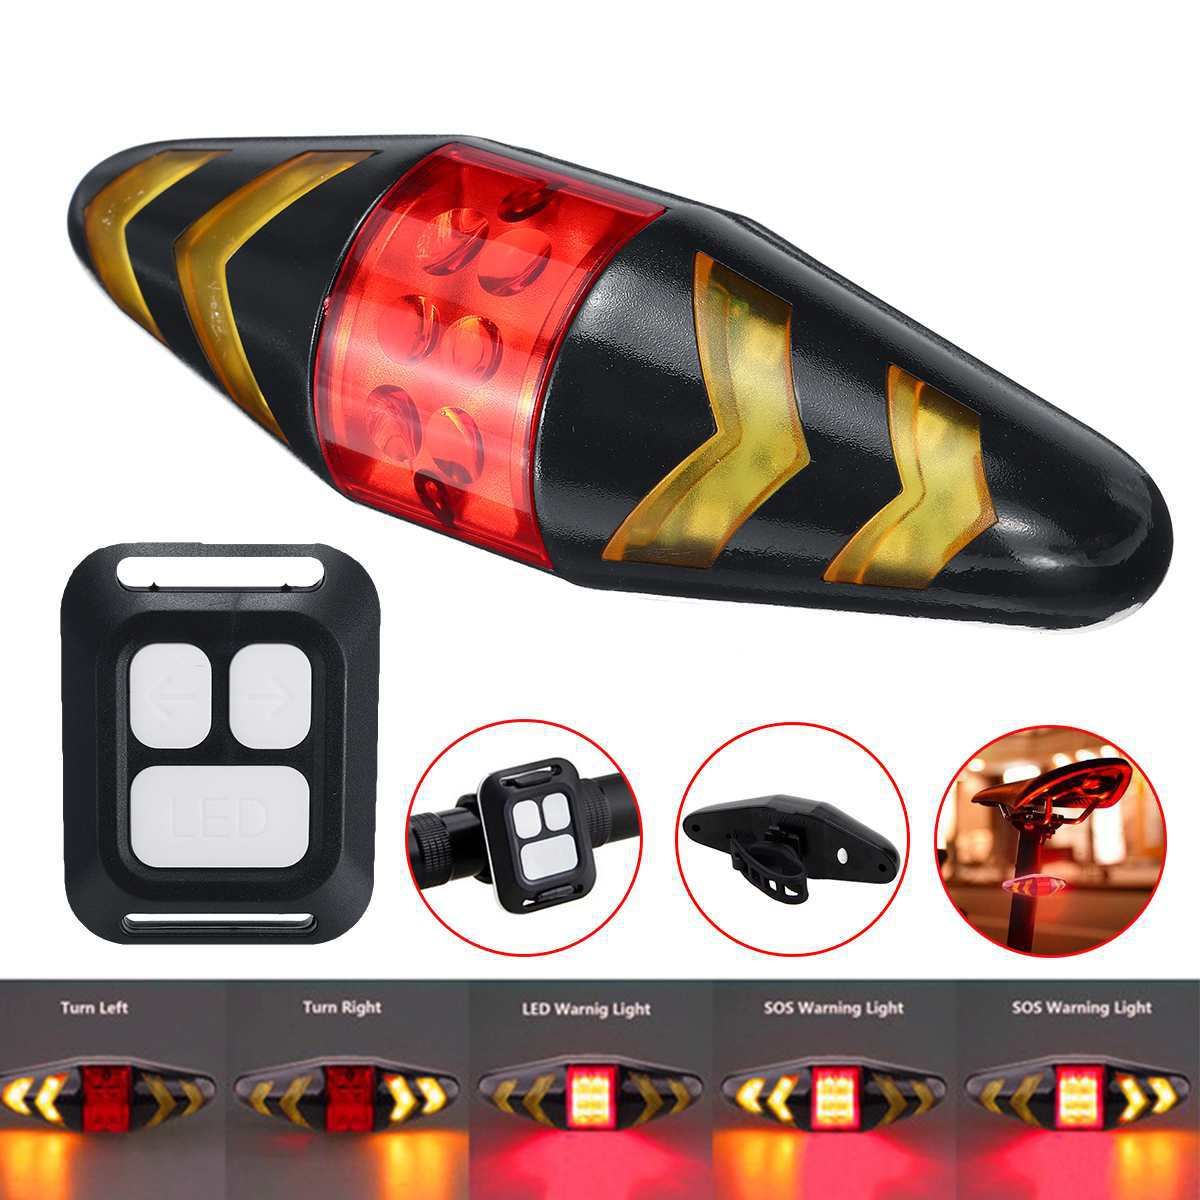 Bicycle Rear Light Wireless Remote Control Rechargeable LED Bike Rear Light Bicycle Turn Signal Taillight Cycling Accessories